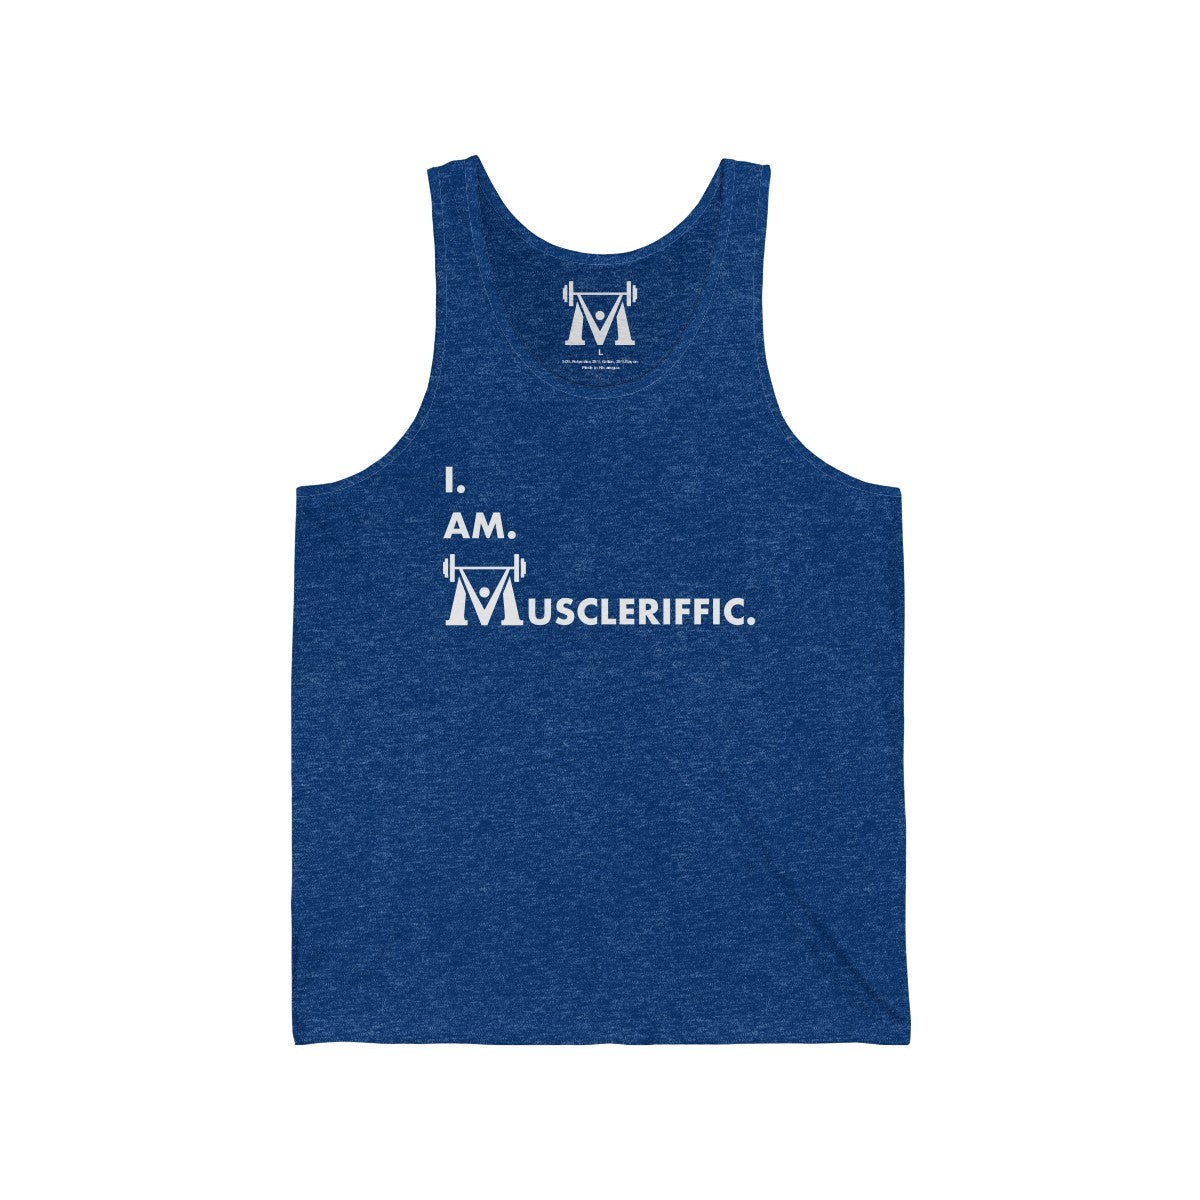 Men's I.Am.Muscleriffic. Jersey Tank